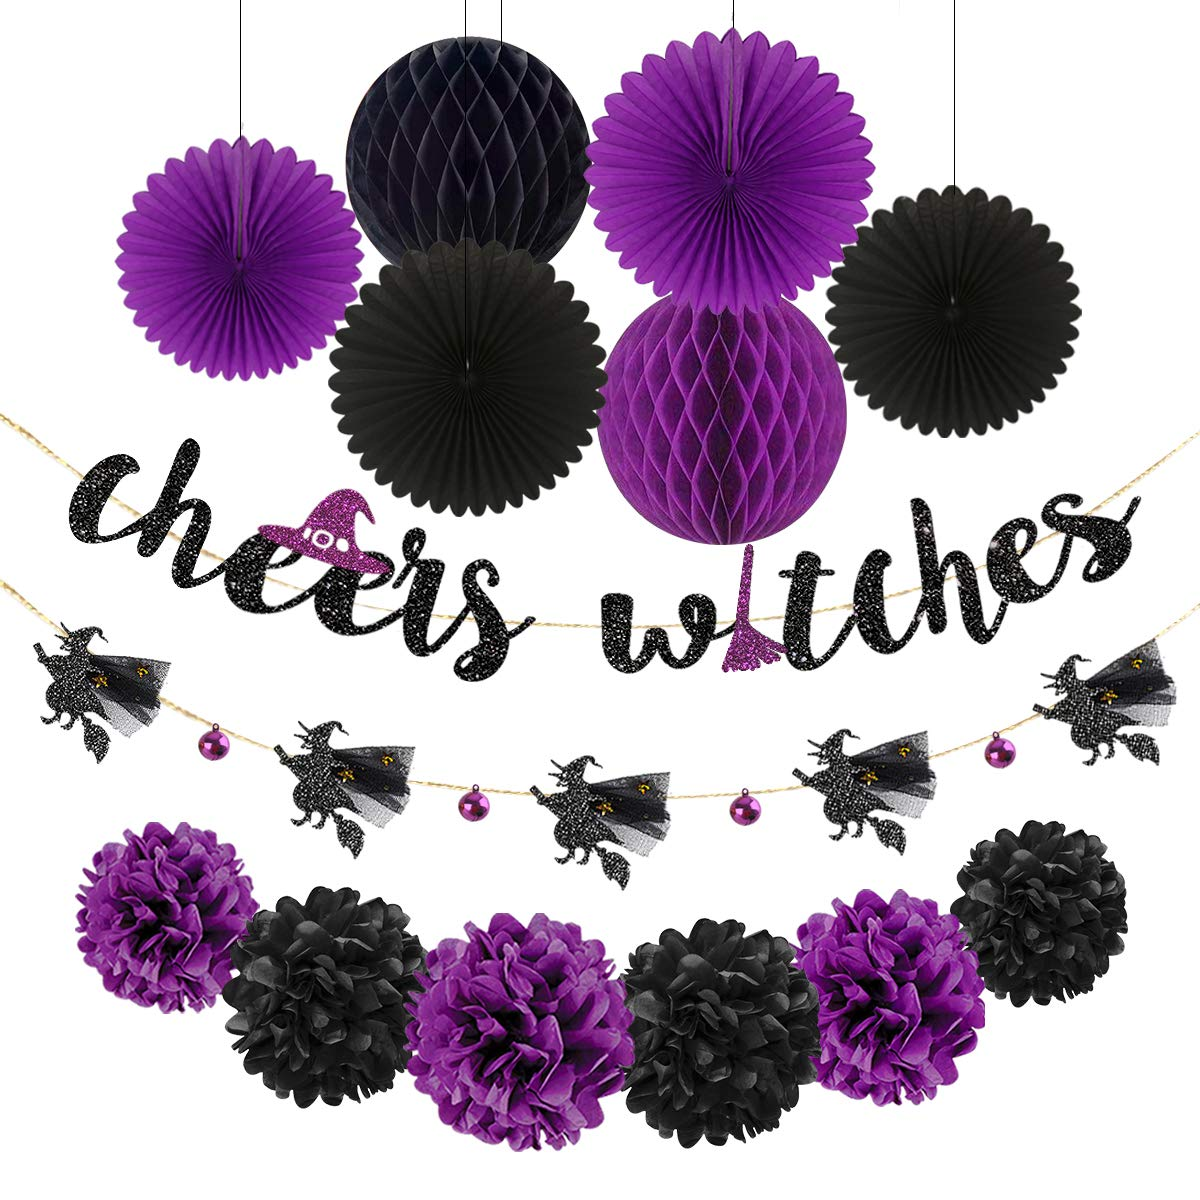 Halloween Banner Kit Black Purple Cheers Witches Garland Banner Paper Fans Pom Poms Flowers Lantern Honeycomb Ball for Halloween Birthday Bachelorette Engagement Hen Party Decorations Supplies by pinkblume